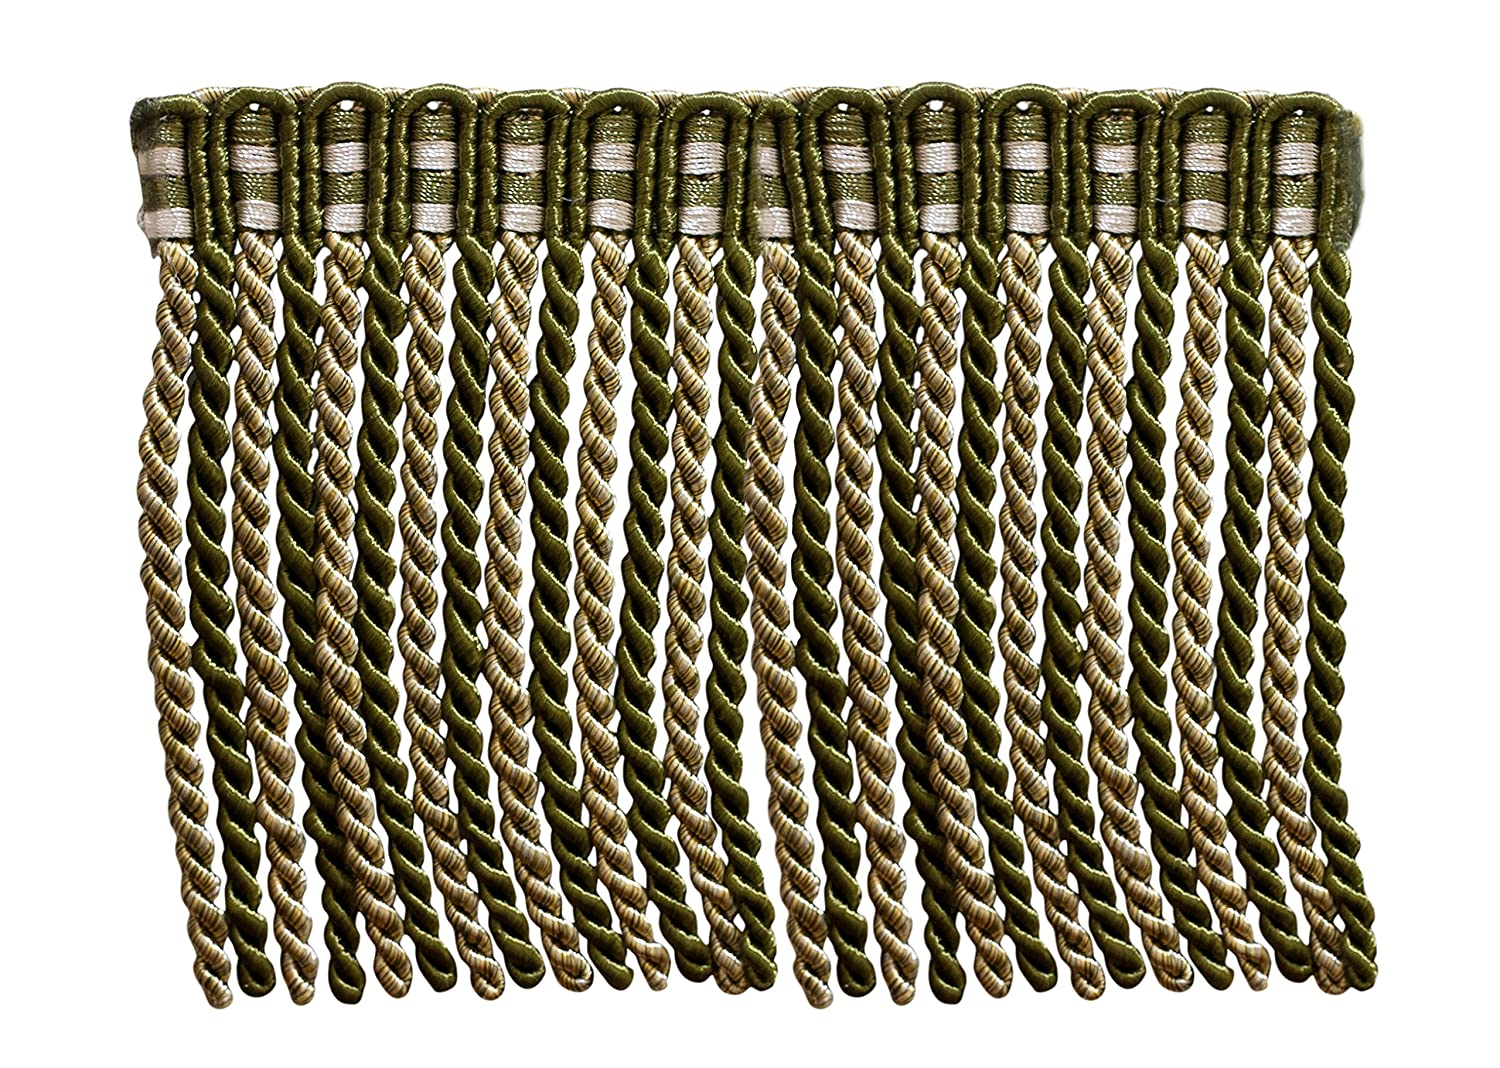 5.4 Yard Value Pack of 6 Inch Long Bullion Fringe Trim, Style# DB6 - Olive Green, Light Gold, White - Olive Garden 010 (16 Ft / 5 Meters) DecoPro